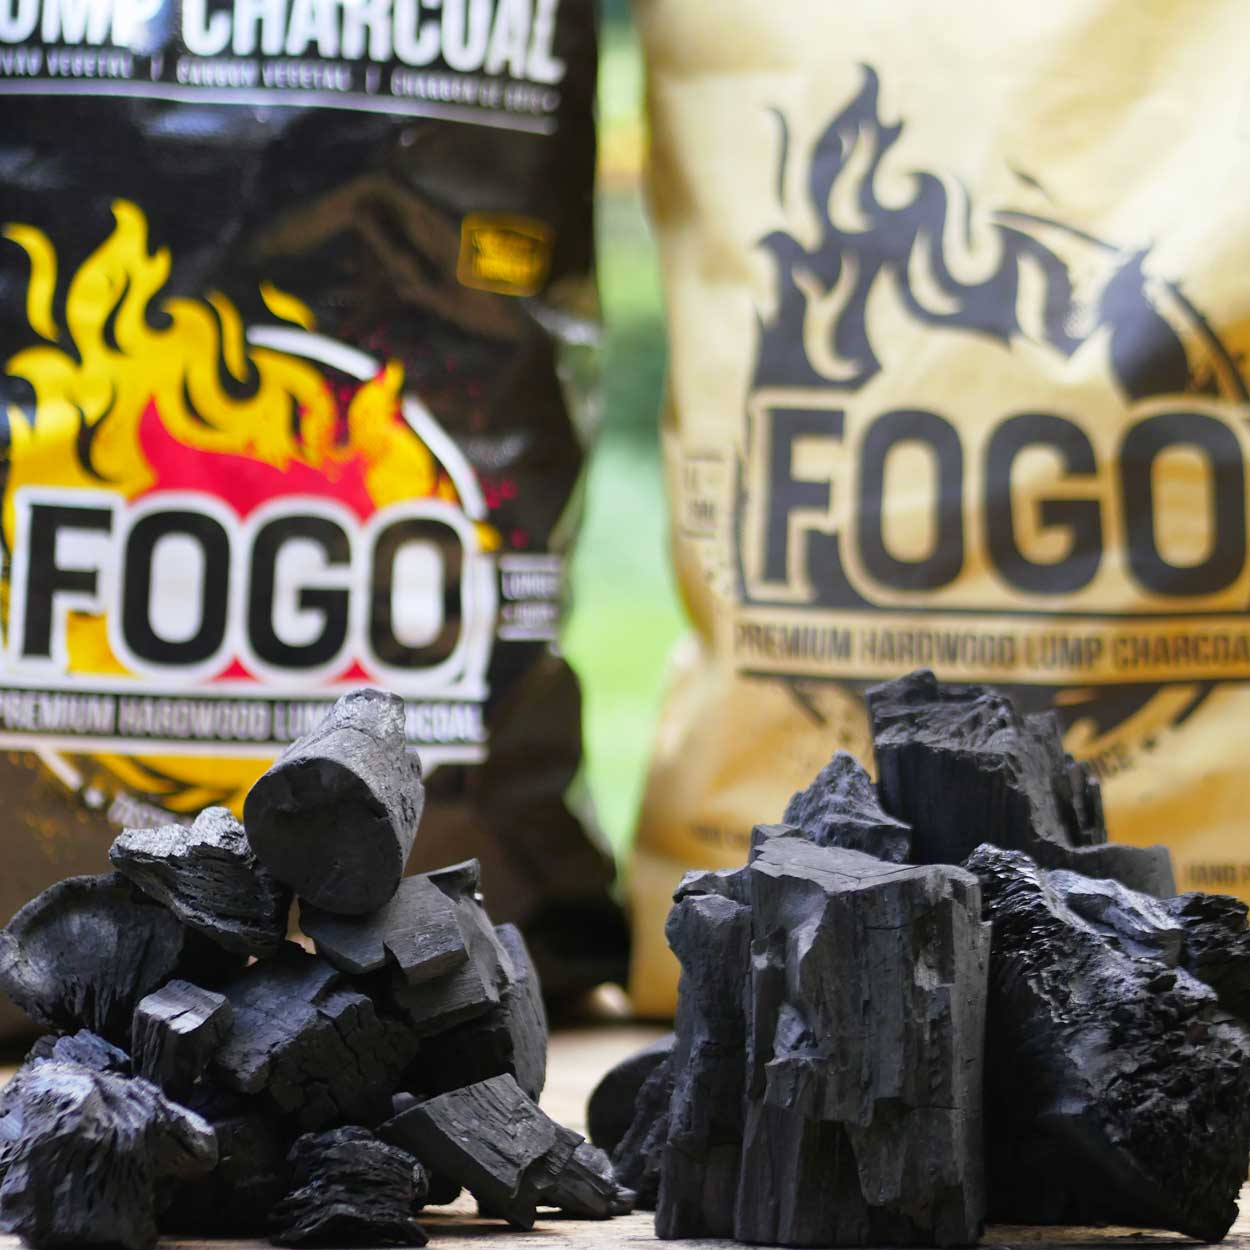 Fogo 35-pound Super Premium Hardwood Lump Charcoal Bag